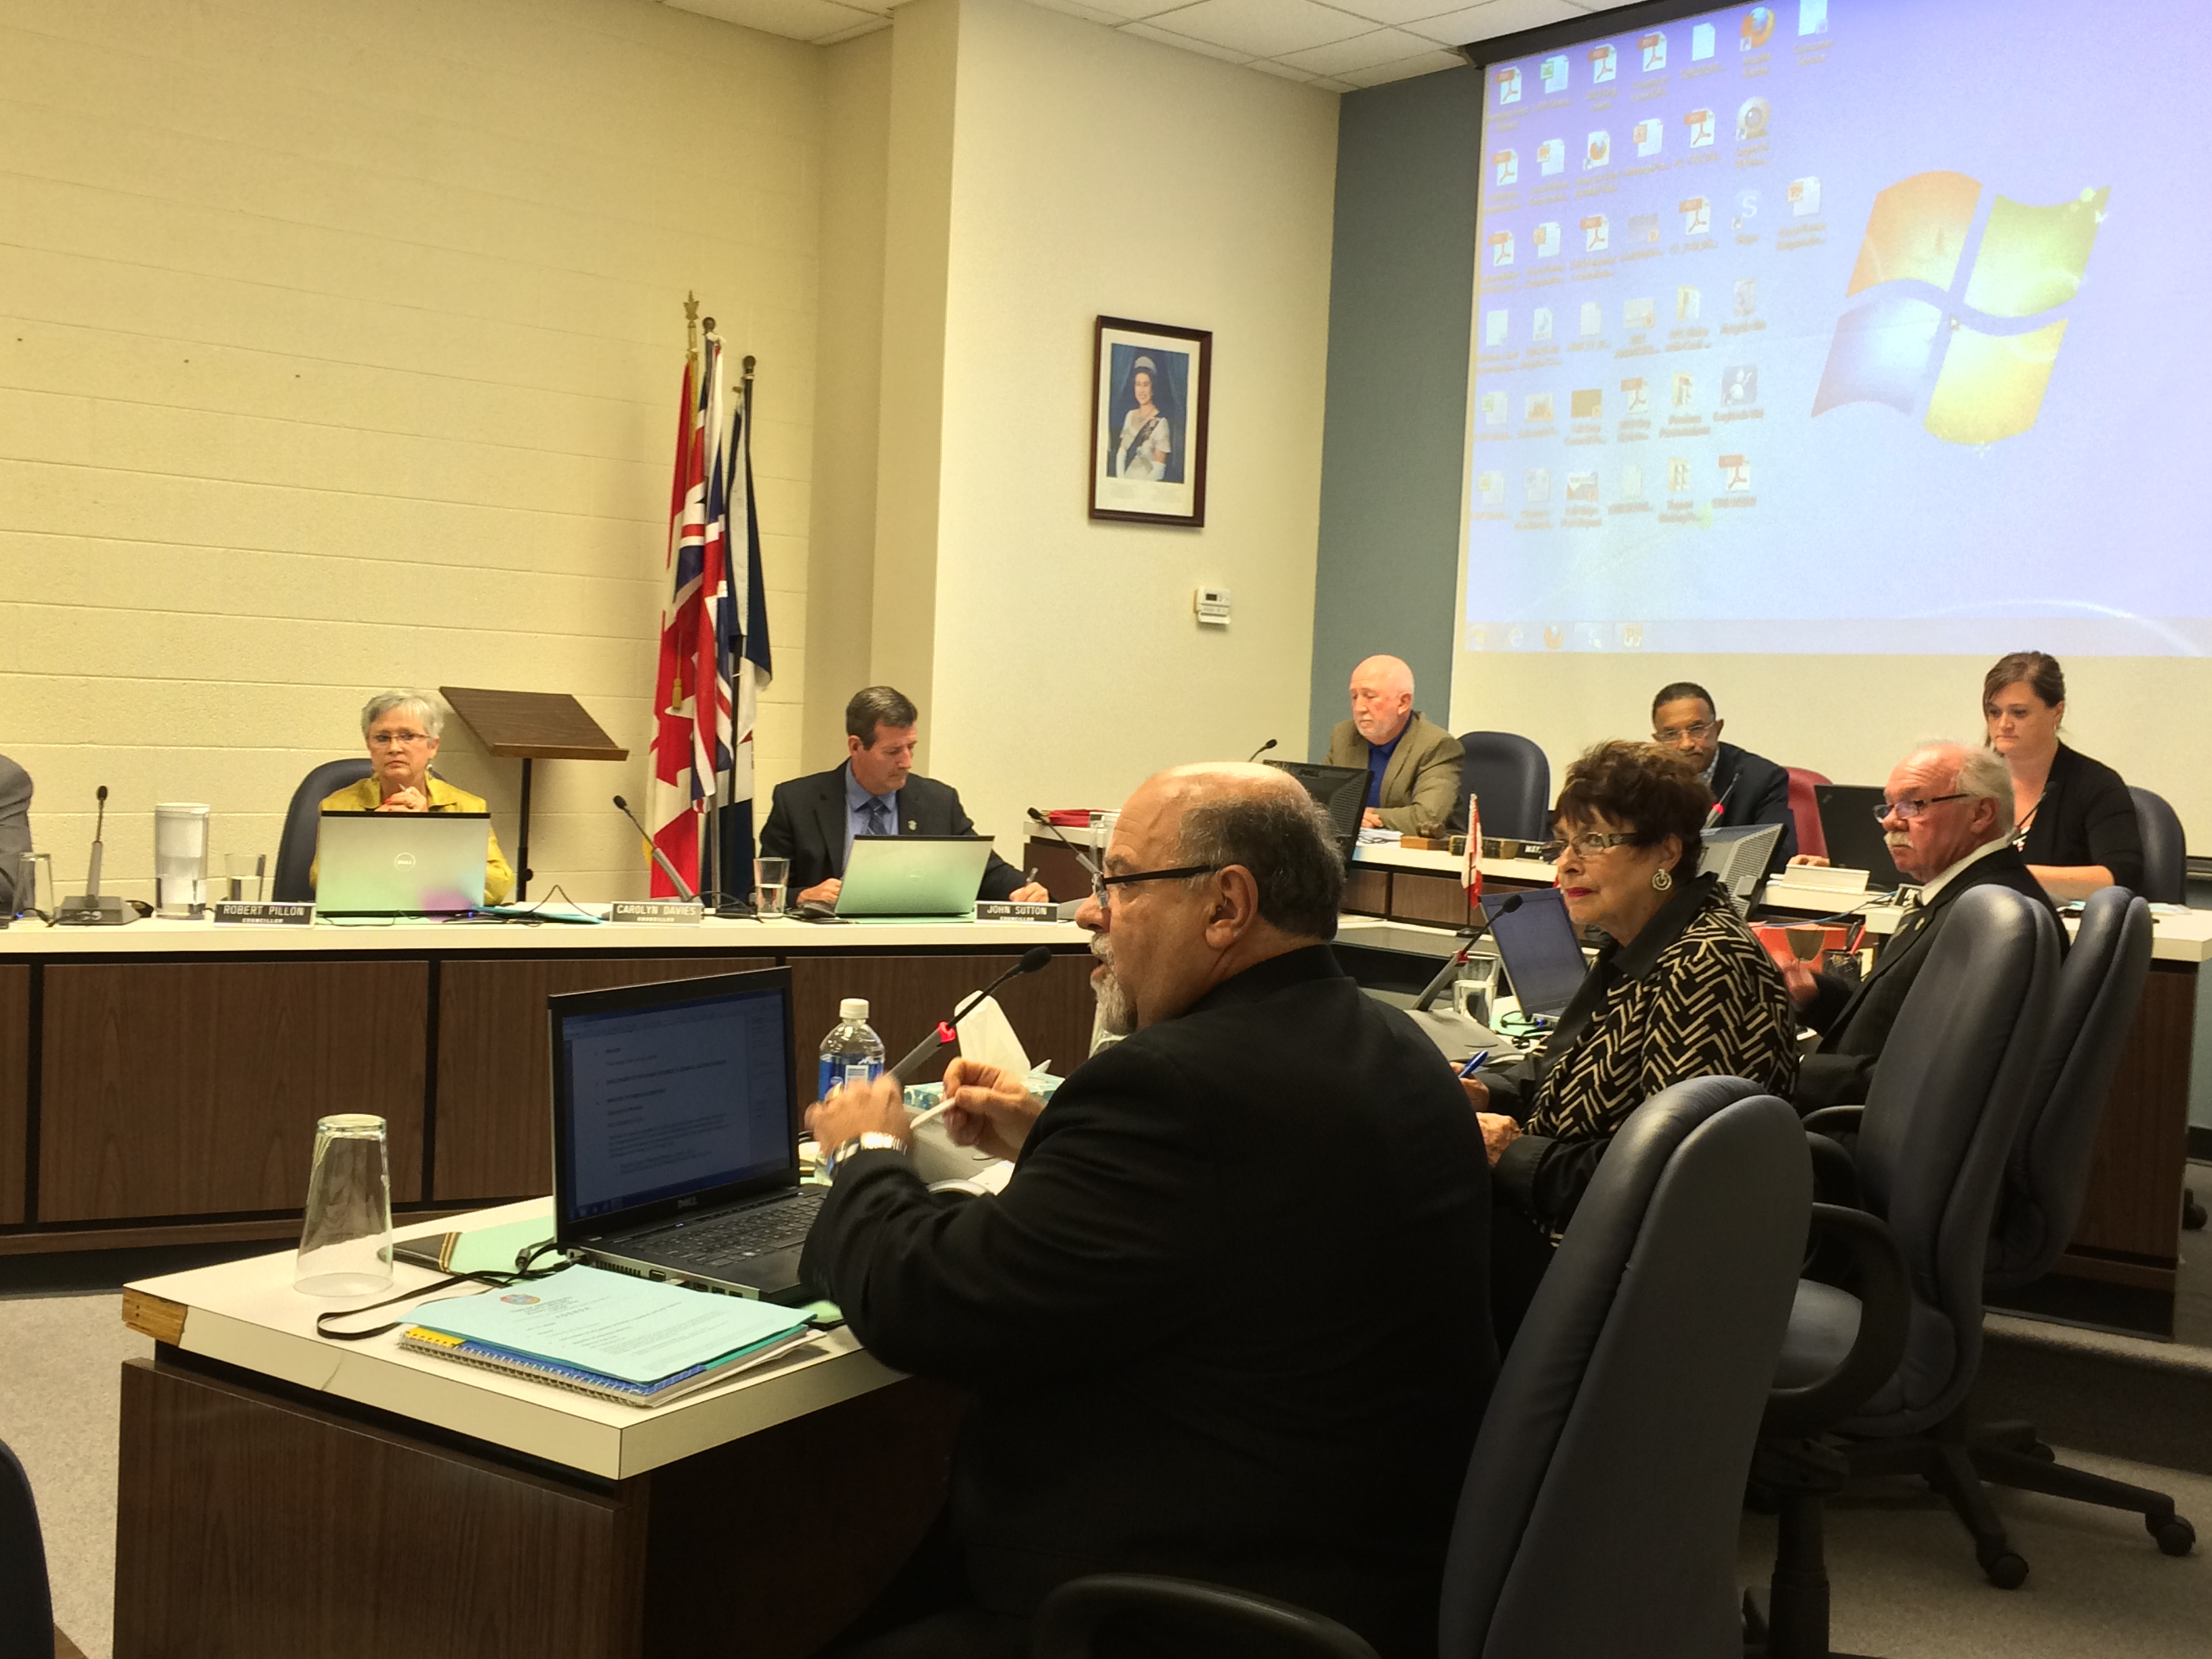 Amherstburg council meets for its regular meeting on June 22, 2014 and discusses process for financial practices review. (Photo by Ricardo Veneza)